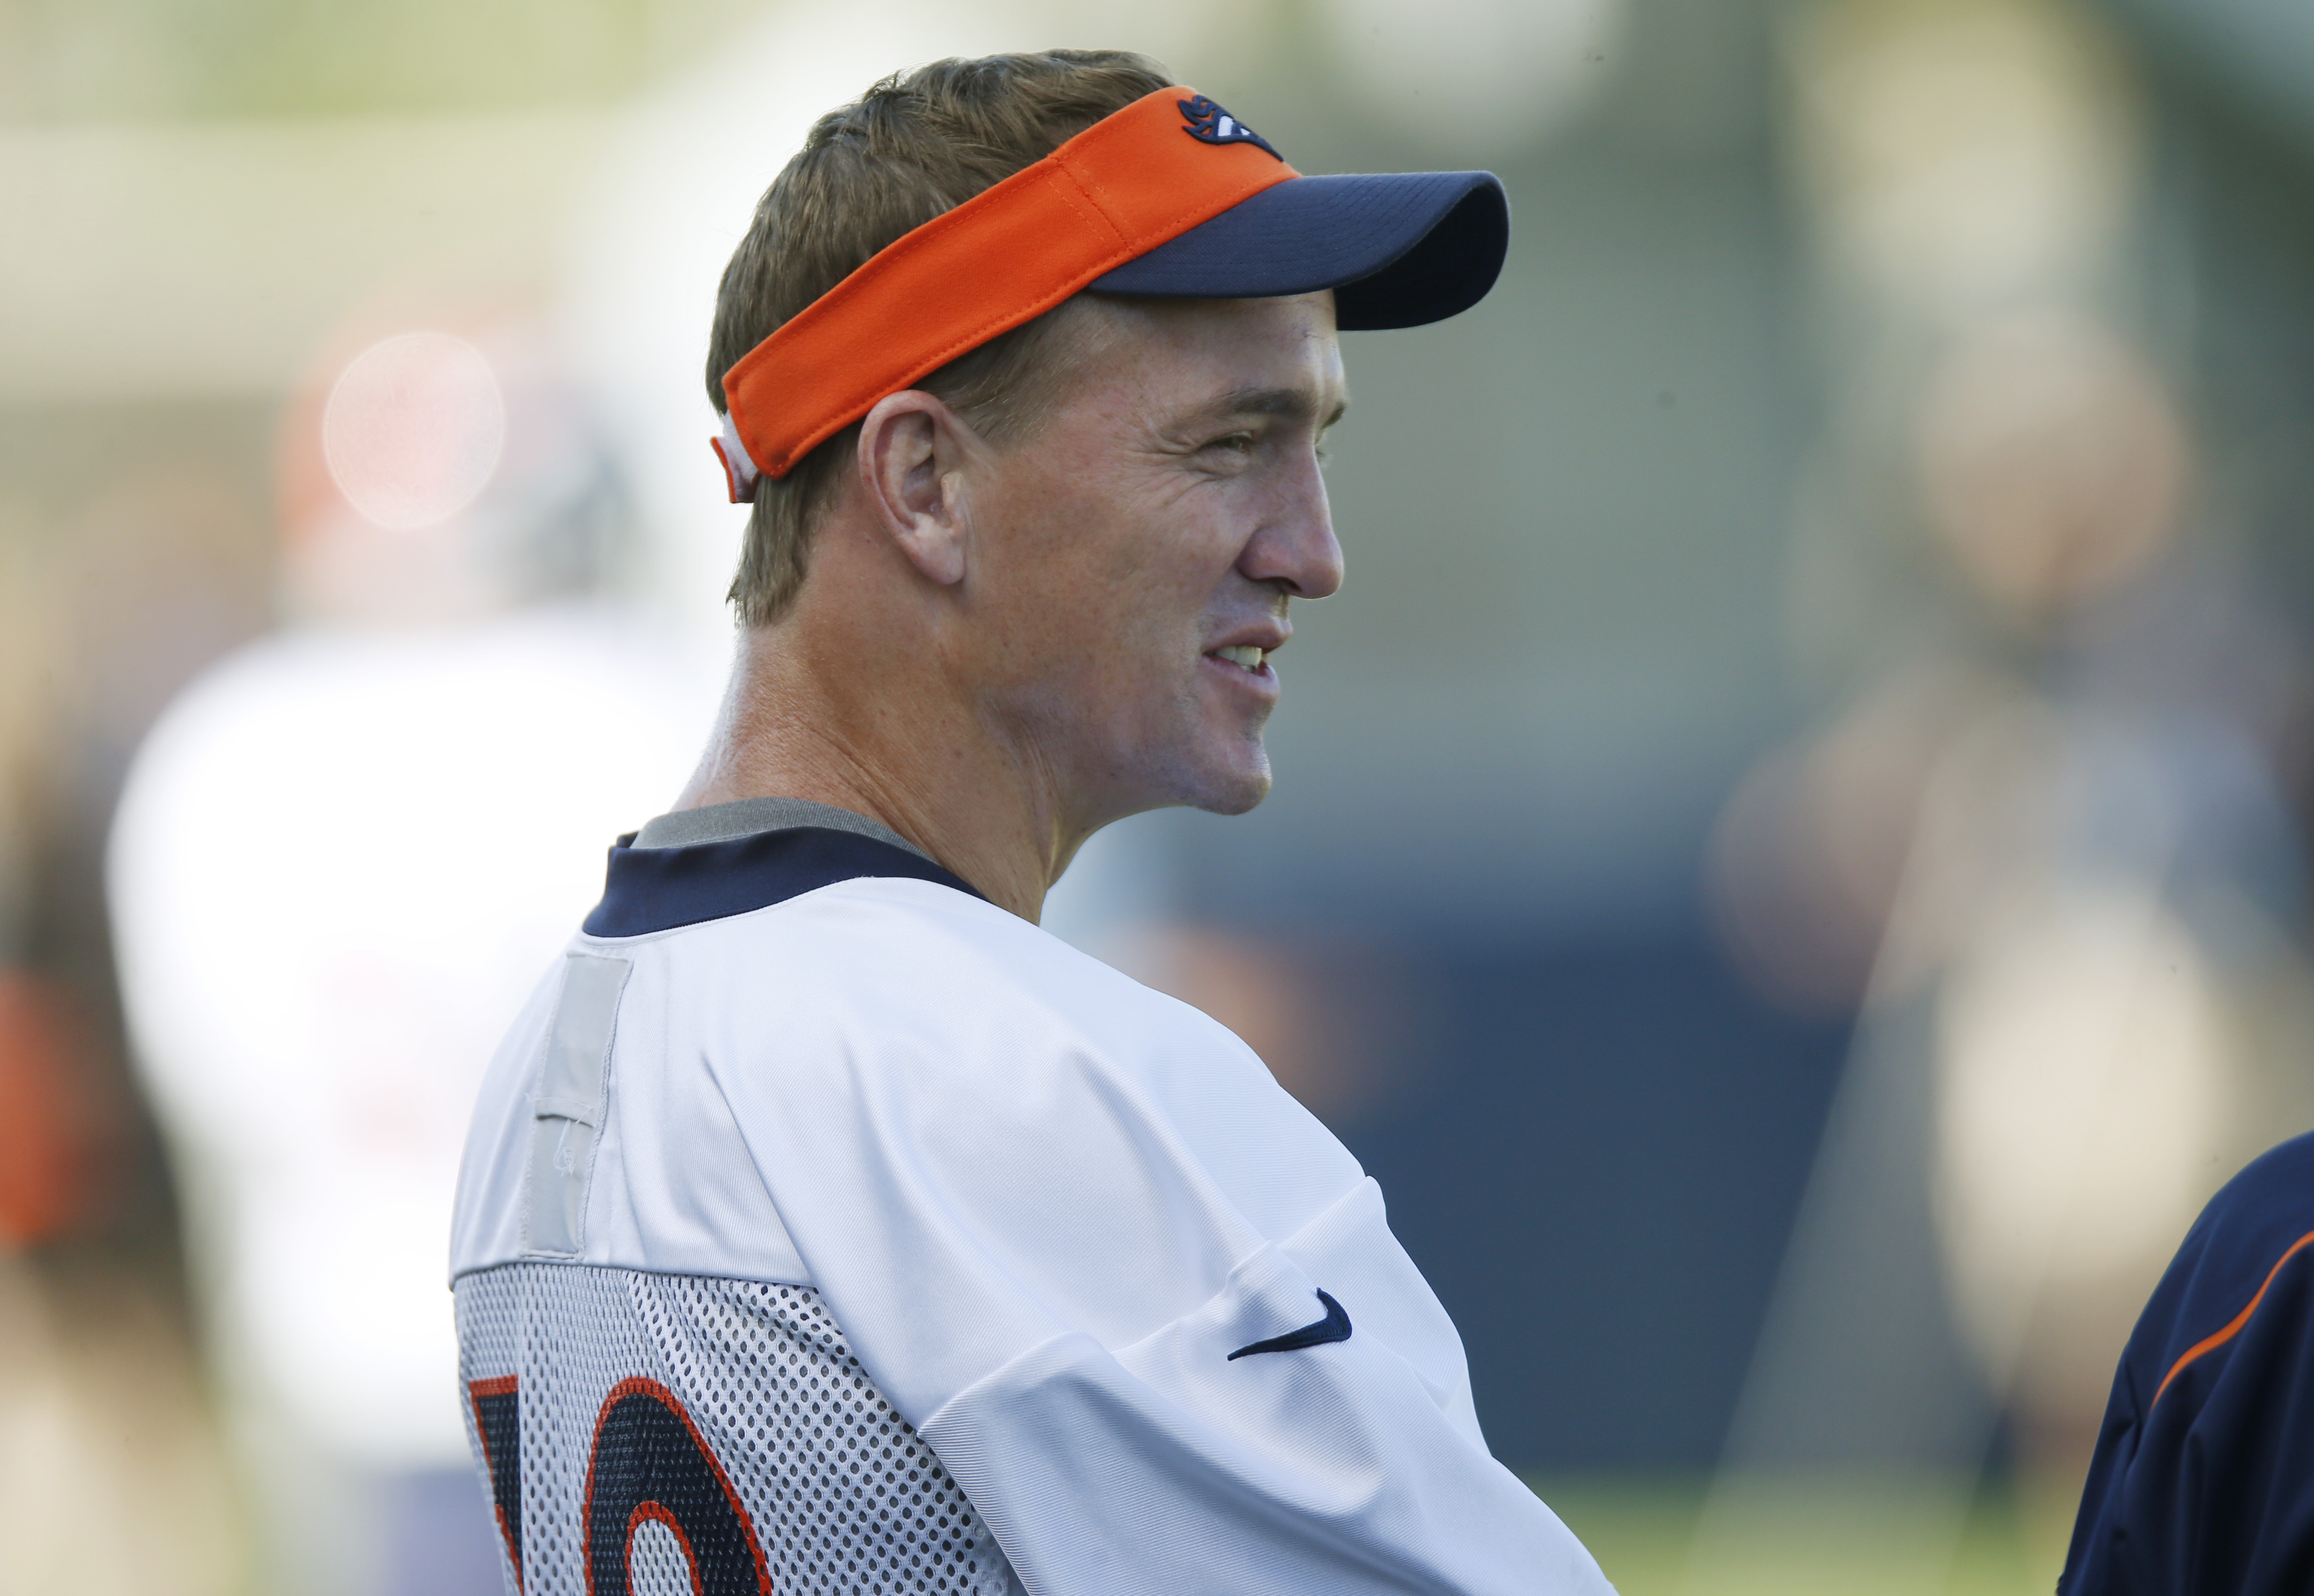 Denver Broncos quarterback Peyton Manning jokes with coaches as he looks on during a morning session at the team's NFL training camp Sunday, Aug. 9, 2015, in Englewood, Colo. (AP Photo/David Zalubowski)